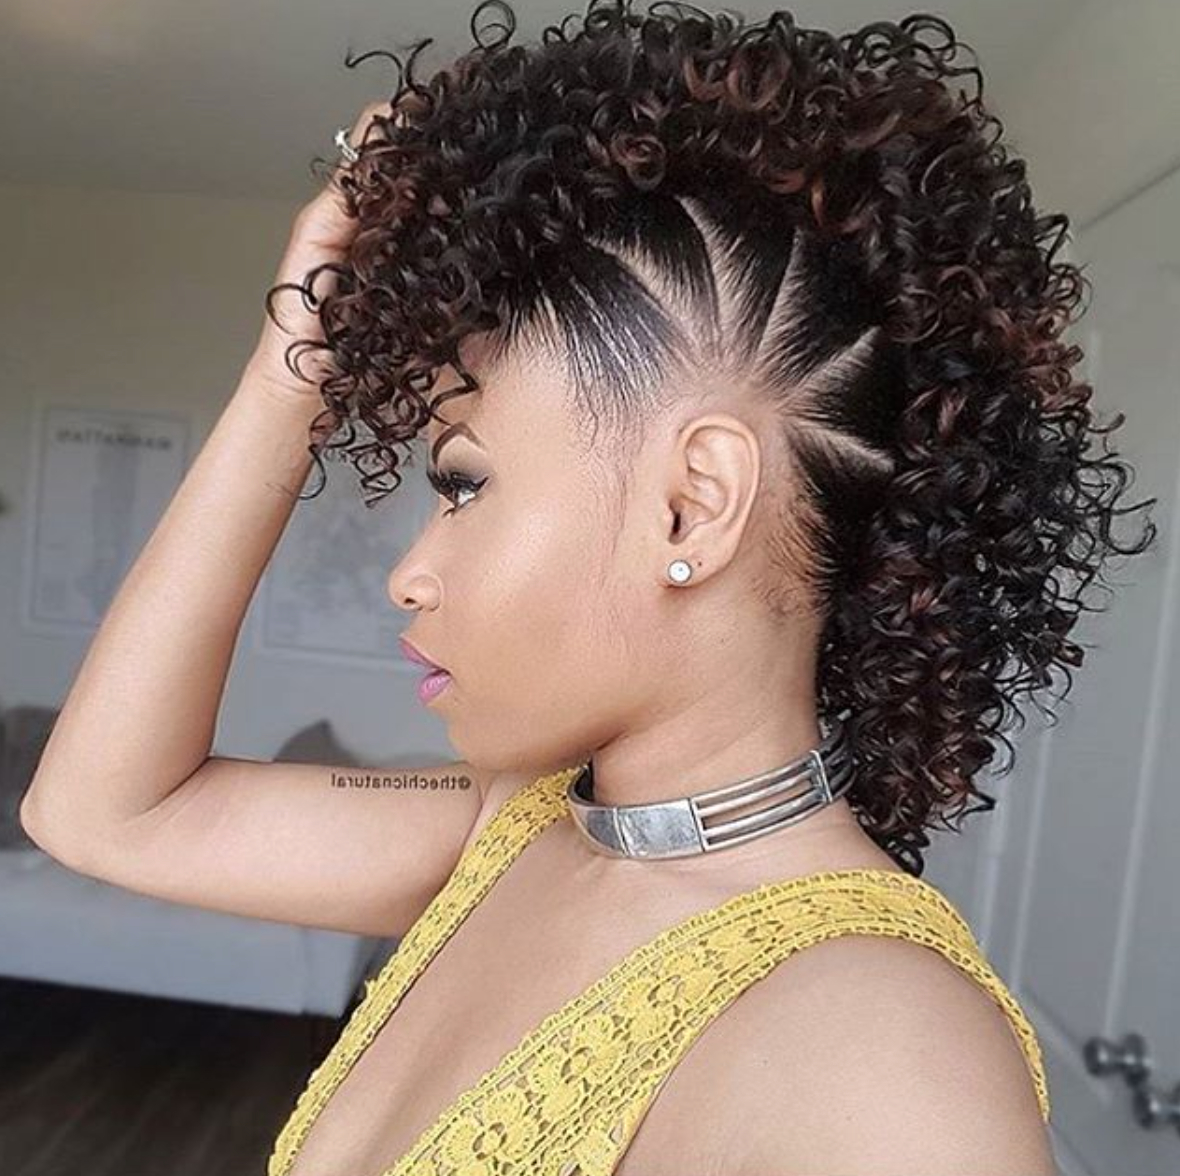 Pinbritt Lee On Hair In 2018 | Pinterest | Hair Styles, Natural With Mohawk Short Hairstyles For Black Women (View 17 of 25)